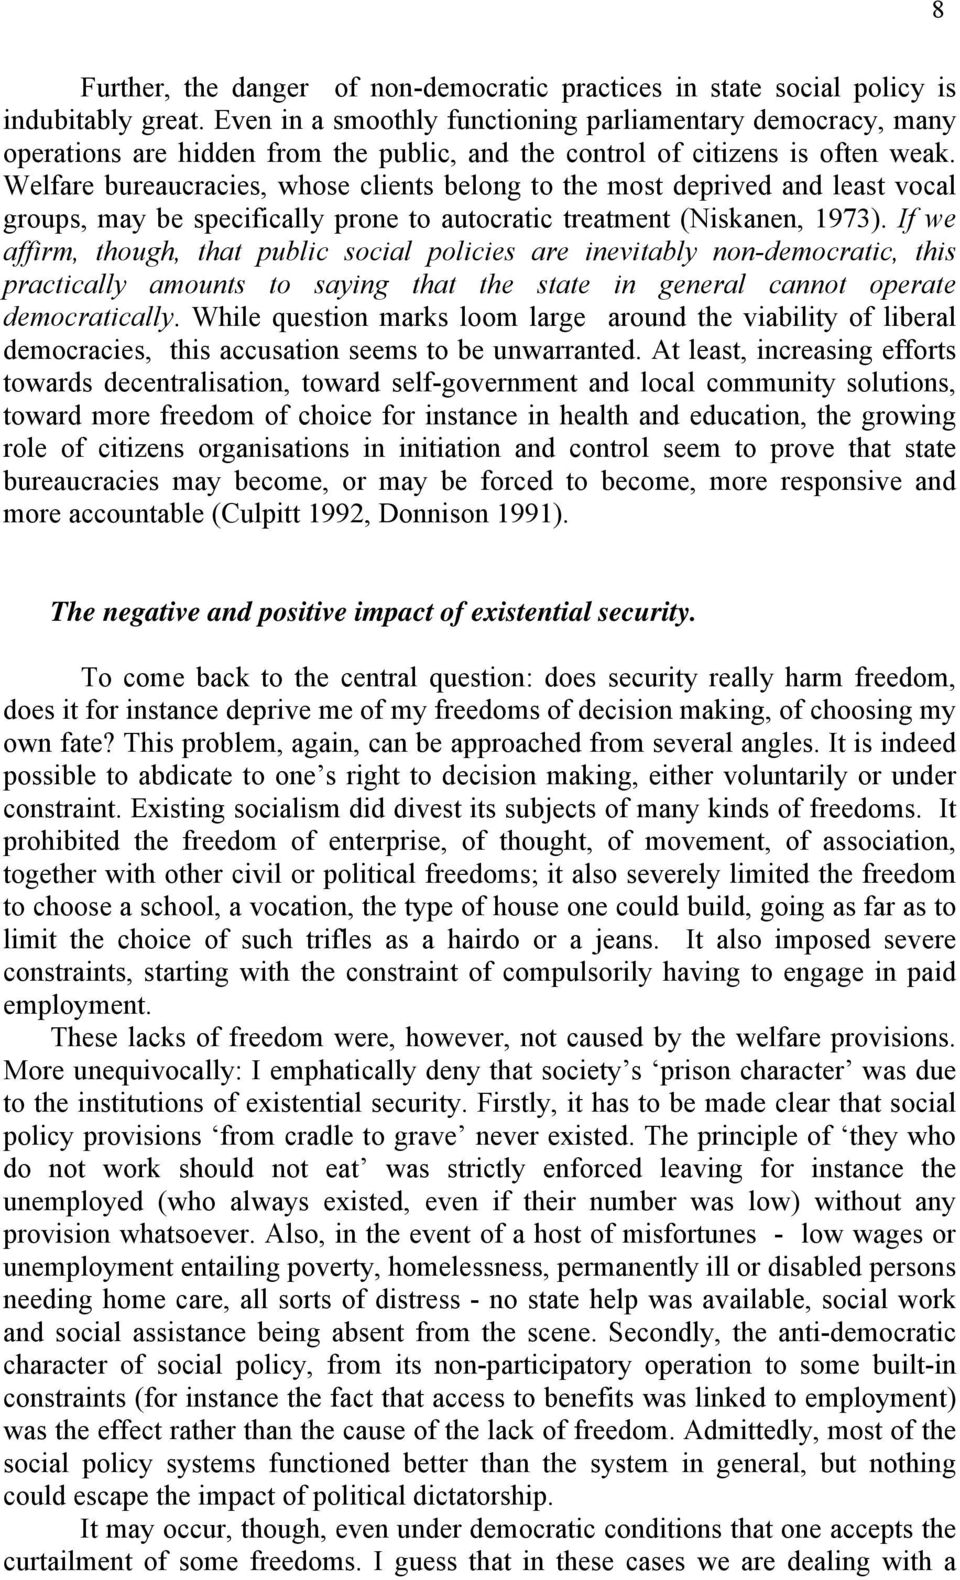 Welfare bureaucracies, whose clients belong to the most deprived and least vocal groups, may be specifically prone to autocratic treatment (Niskanen, 1973).